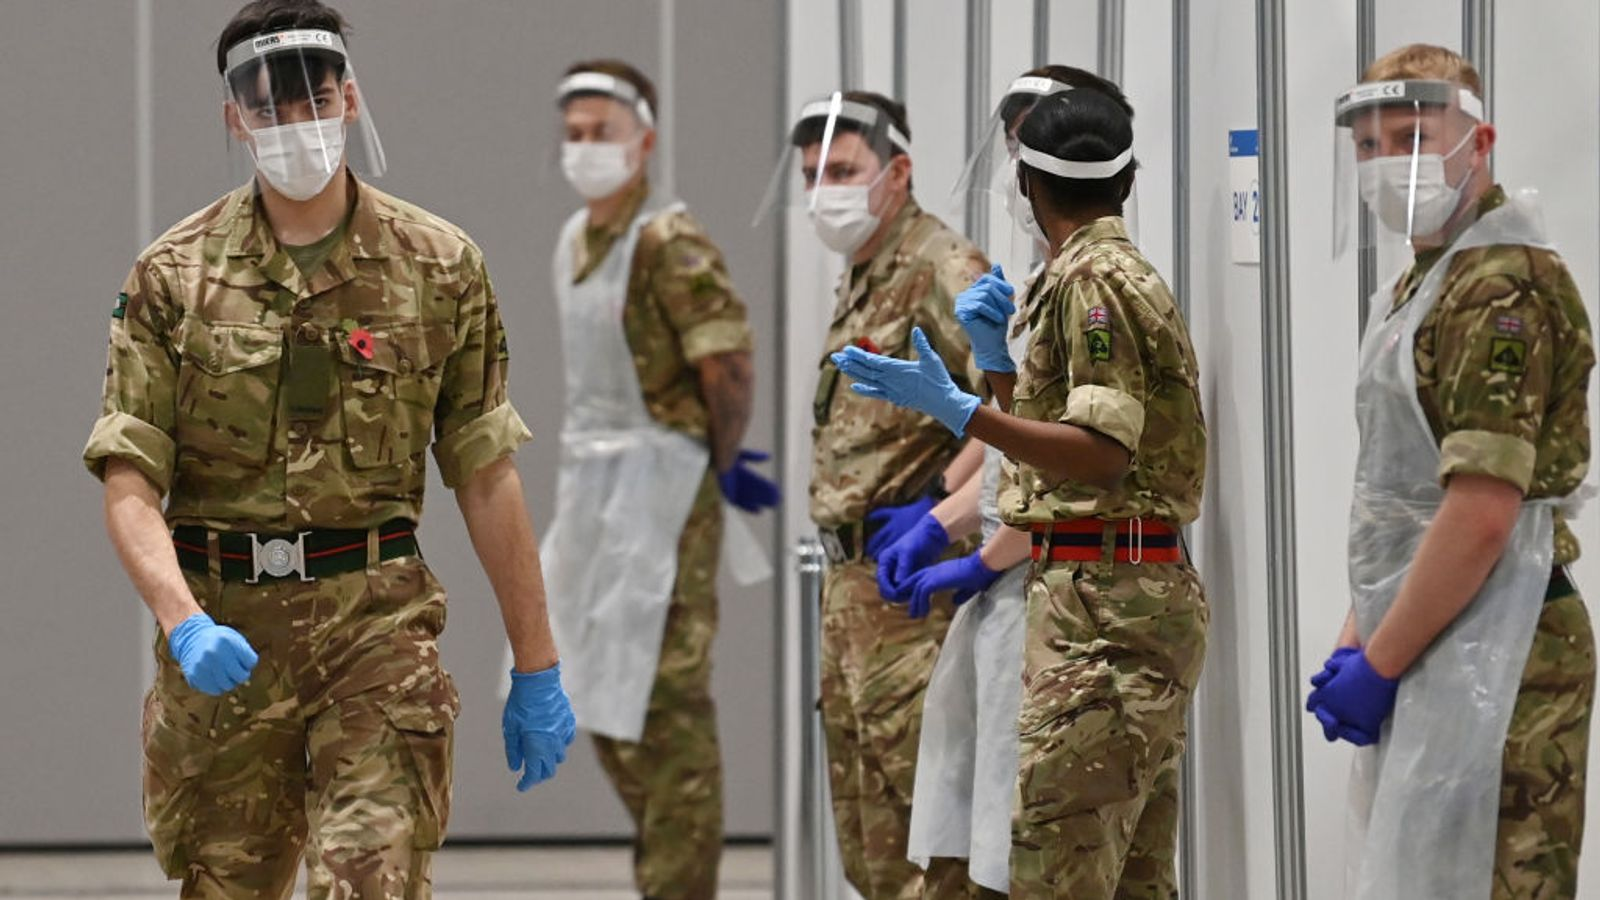 COVID-19: 'No capacity' - Northern Ireland pleads for armed forces to help 'exhausted' hospital staff with patients